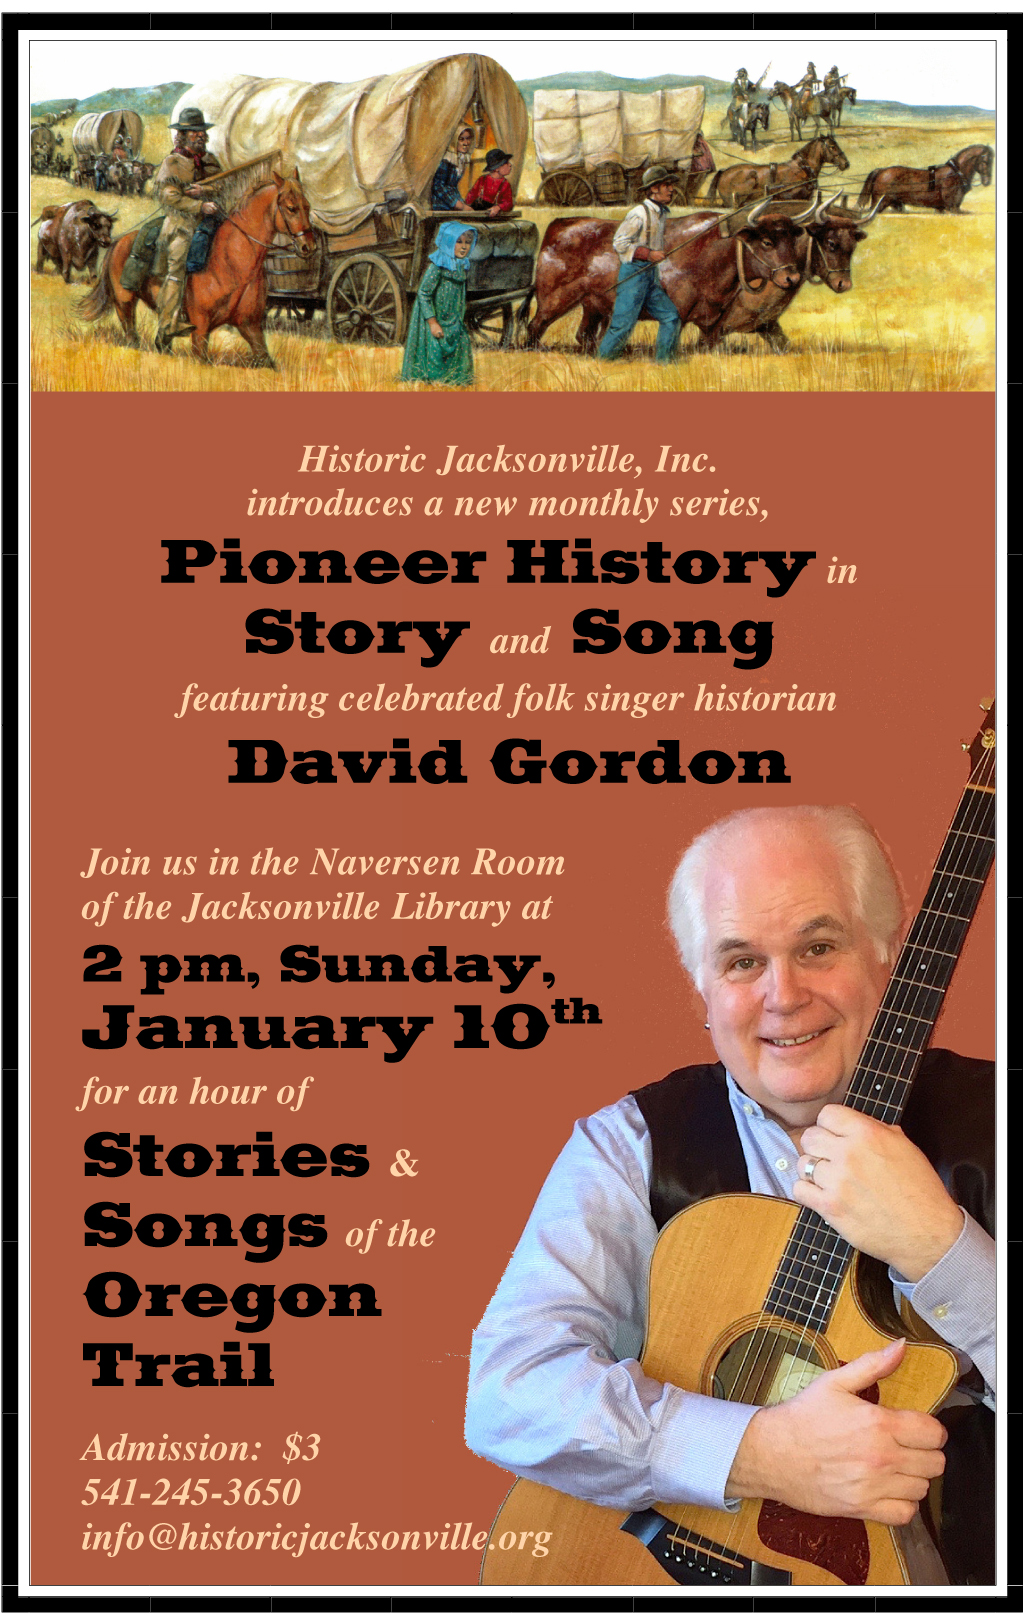 Story & Song-Oregon Trail-1-10-16